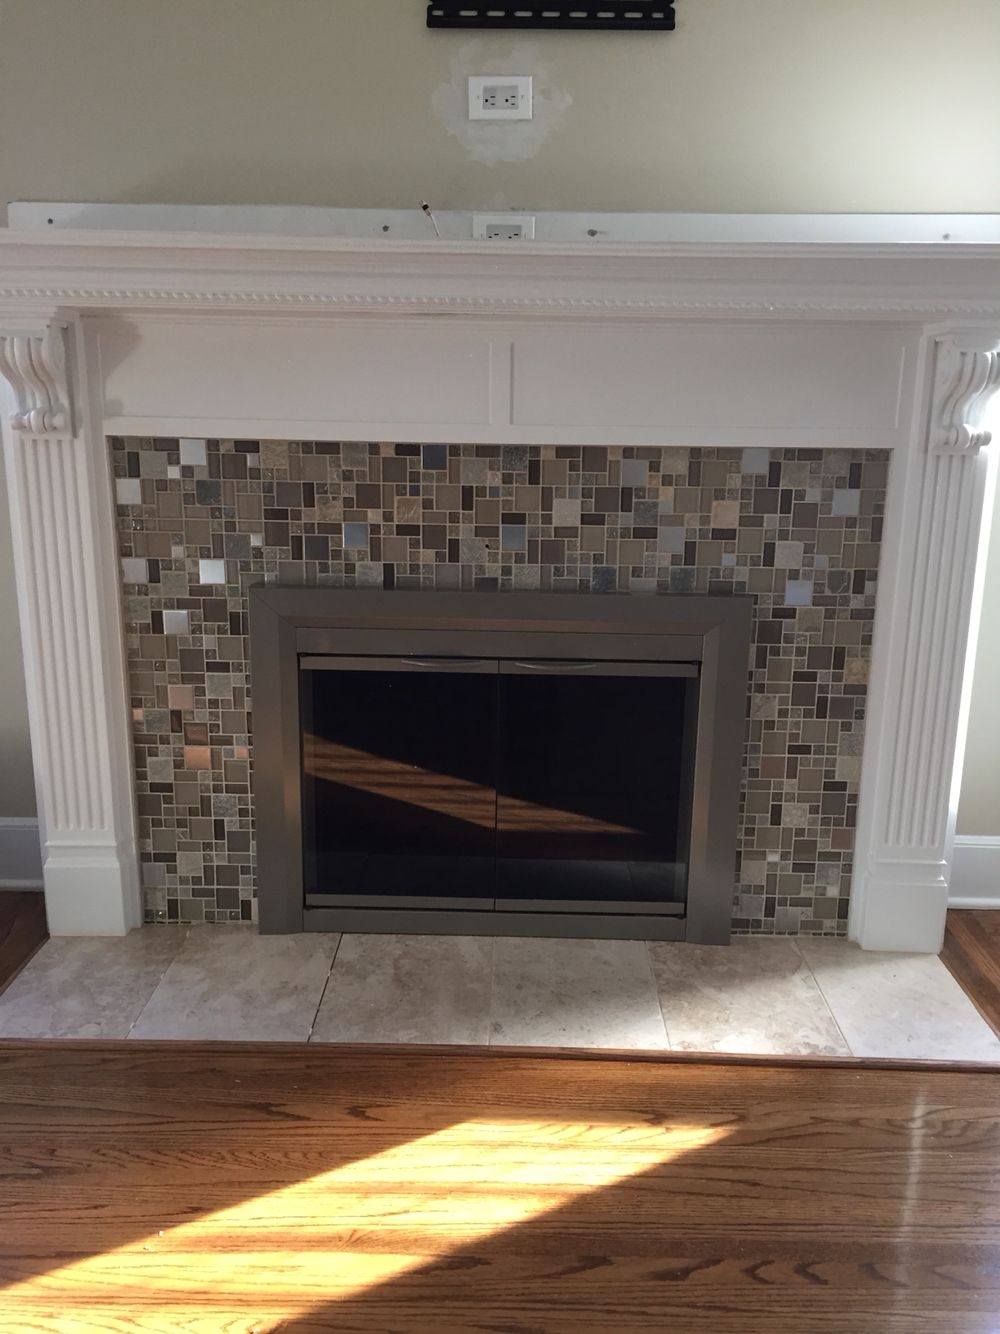 Outstanding Diy Cover Old Fireplace Using Mdf And Foam Moldings Trims Download Free Architecture Designs Embacsunscenecom